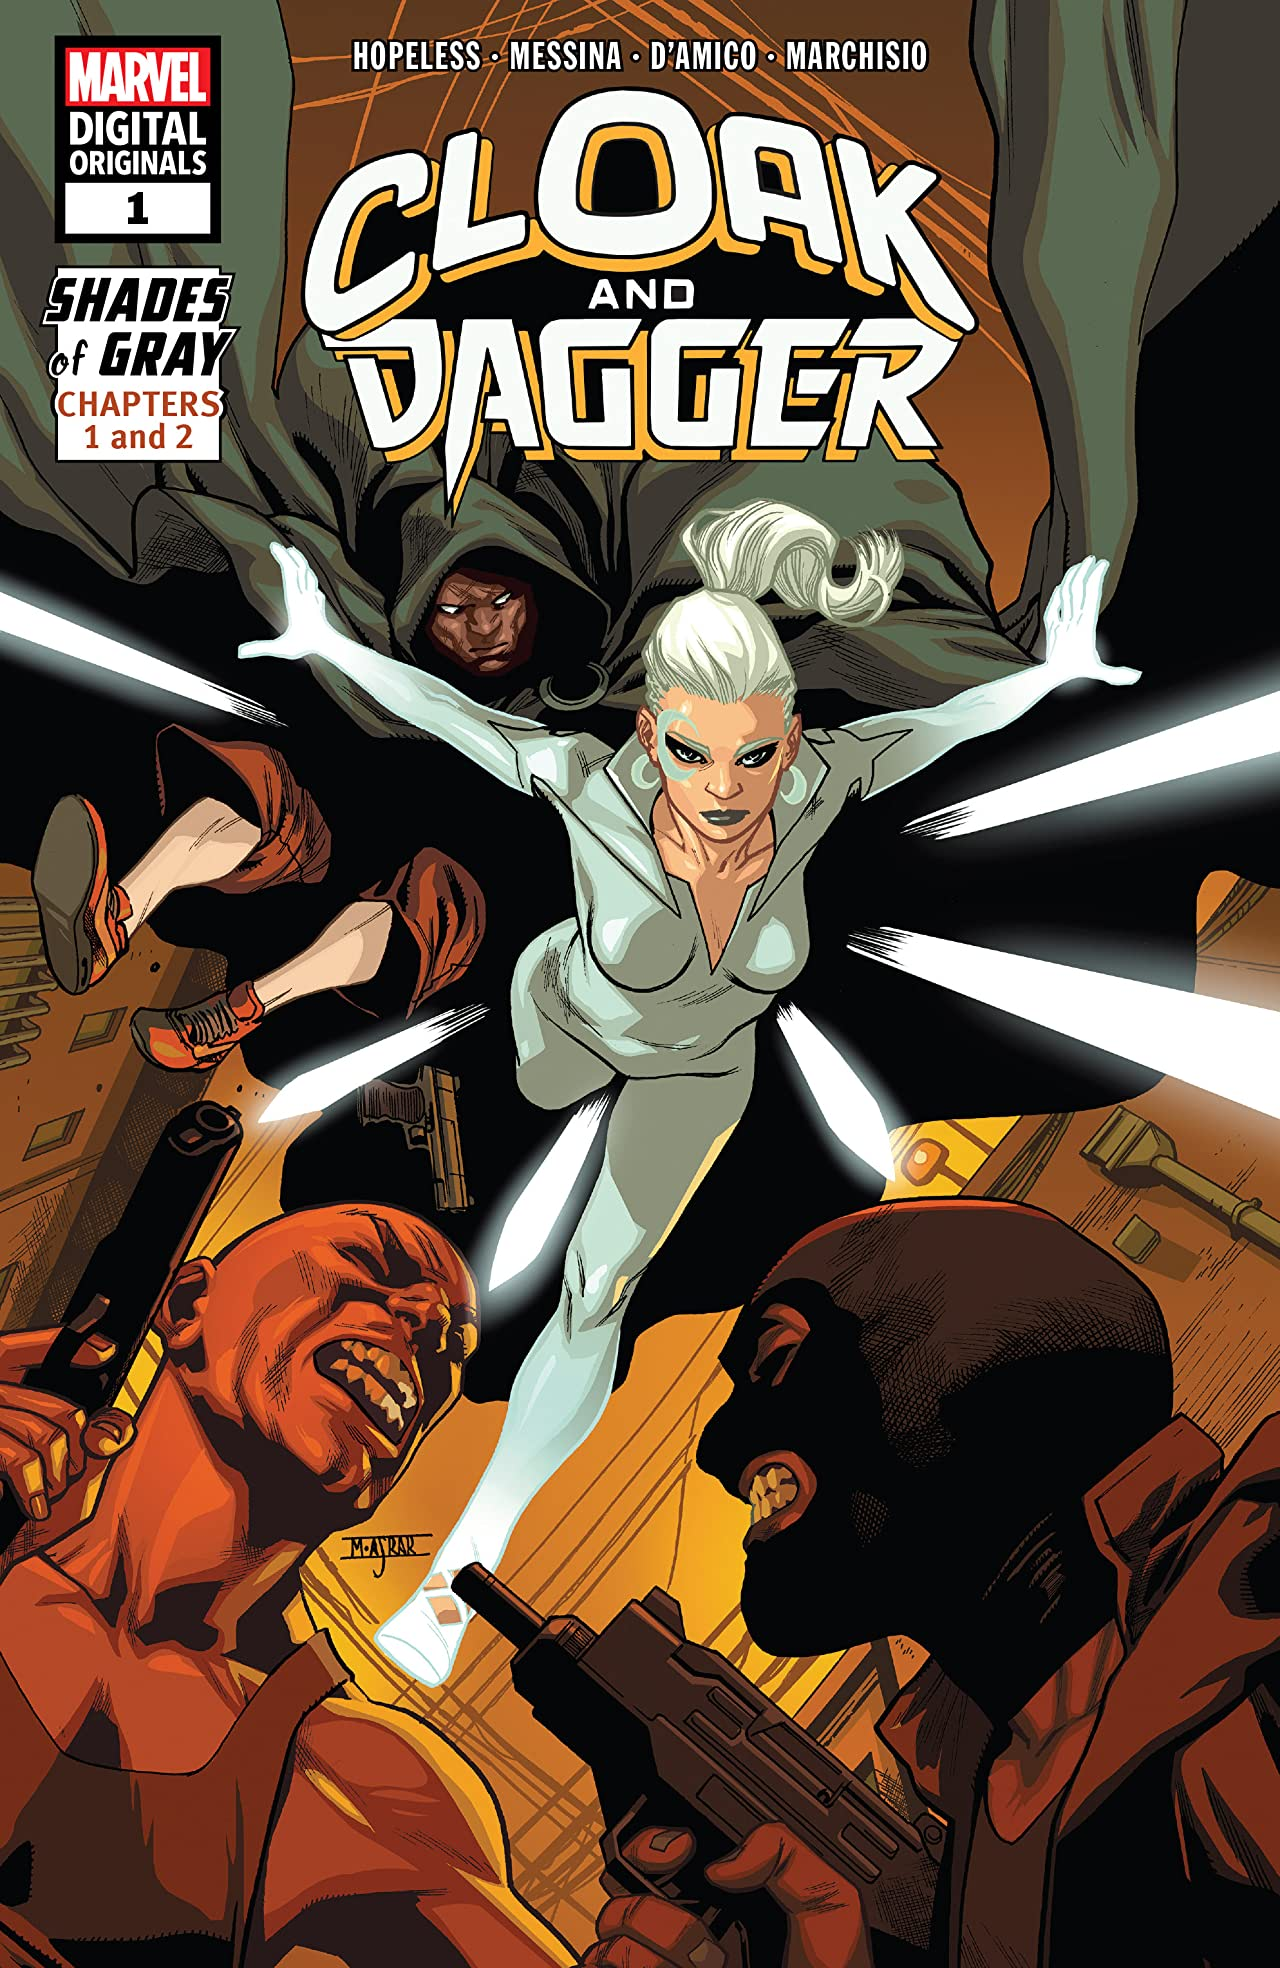 Cloak And Dagger - Marvel Digital Original (2018) #1